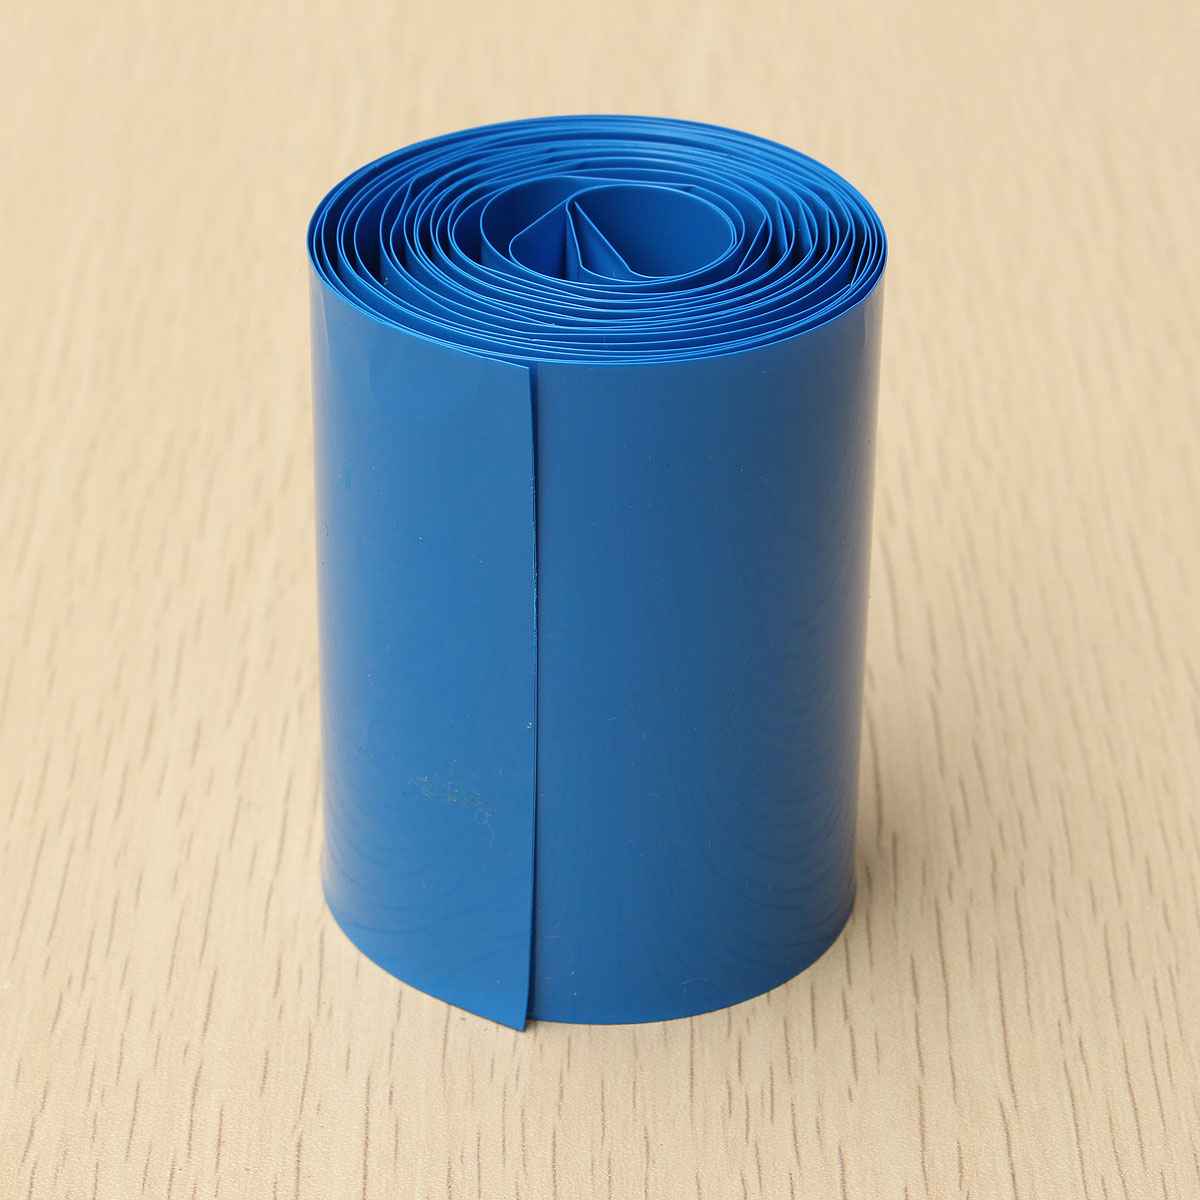 2 Meter 64mm Width PVC Heat Shrink Wrap Tube Blue for AA Battery Pack